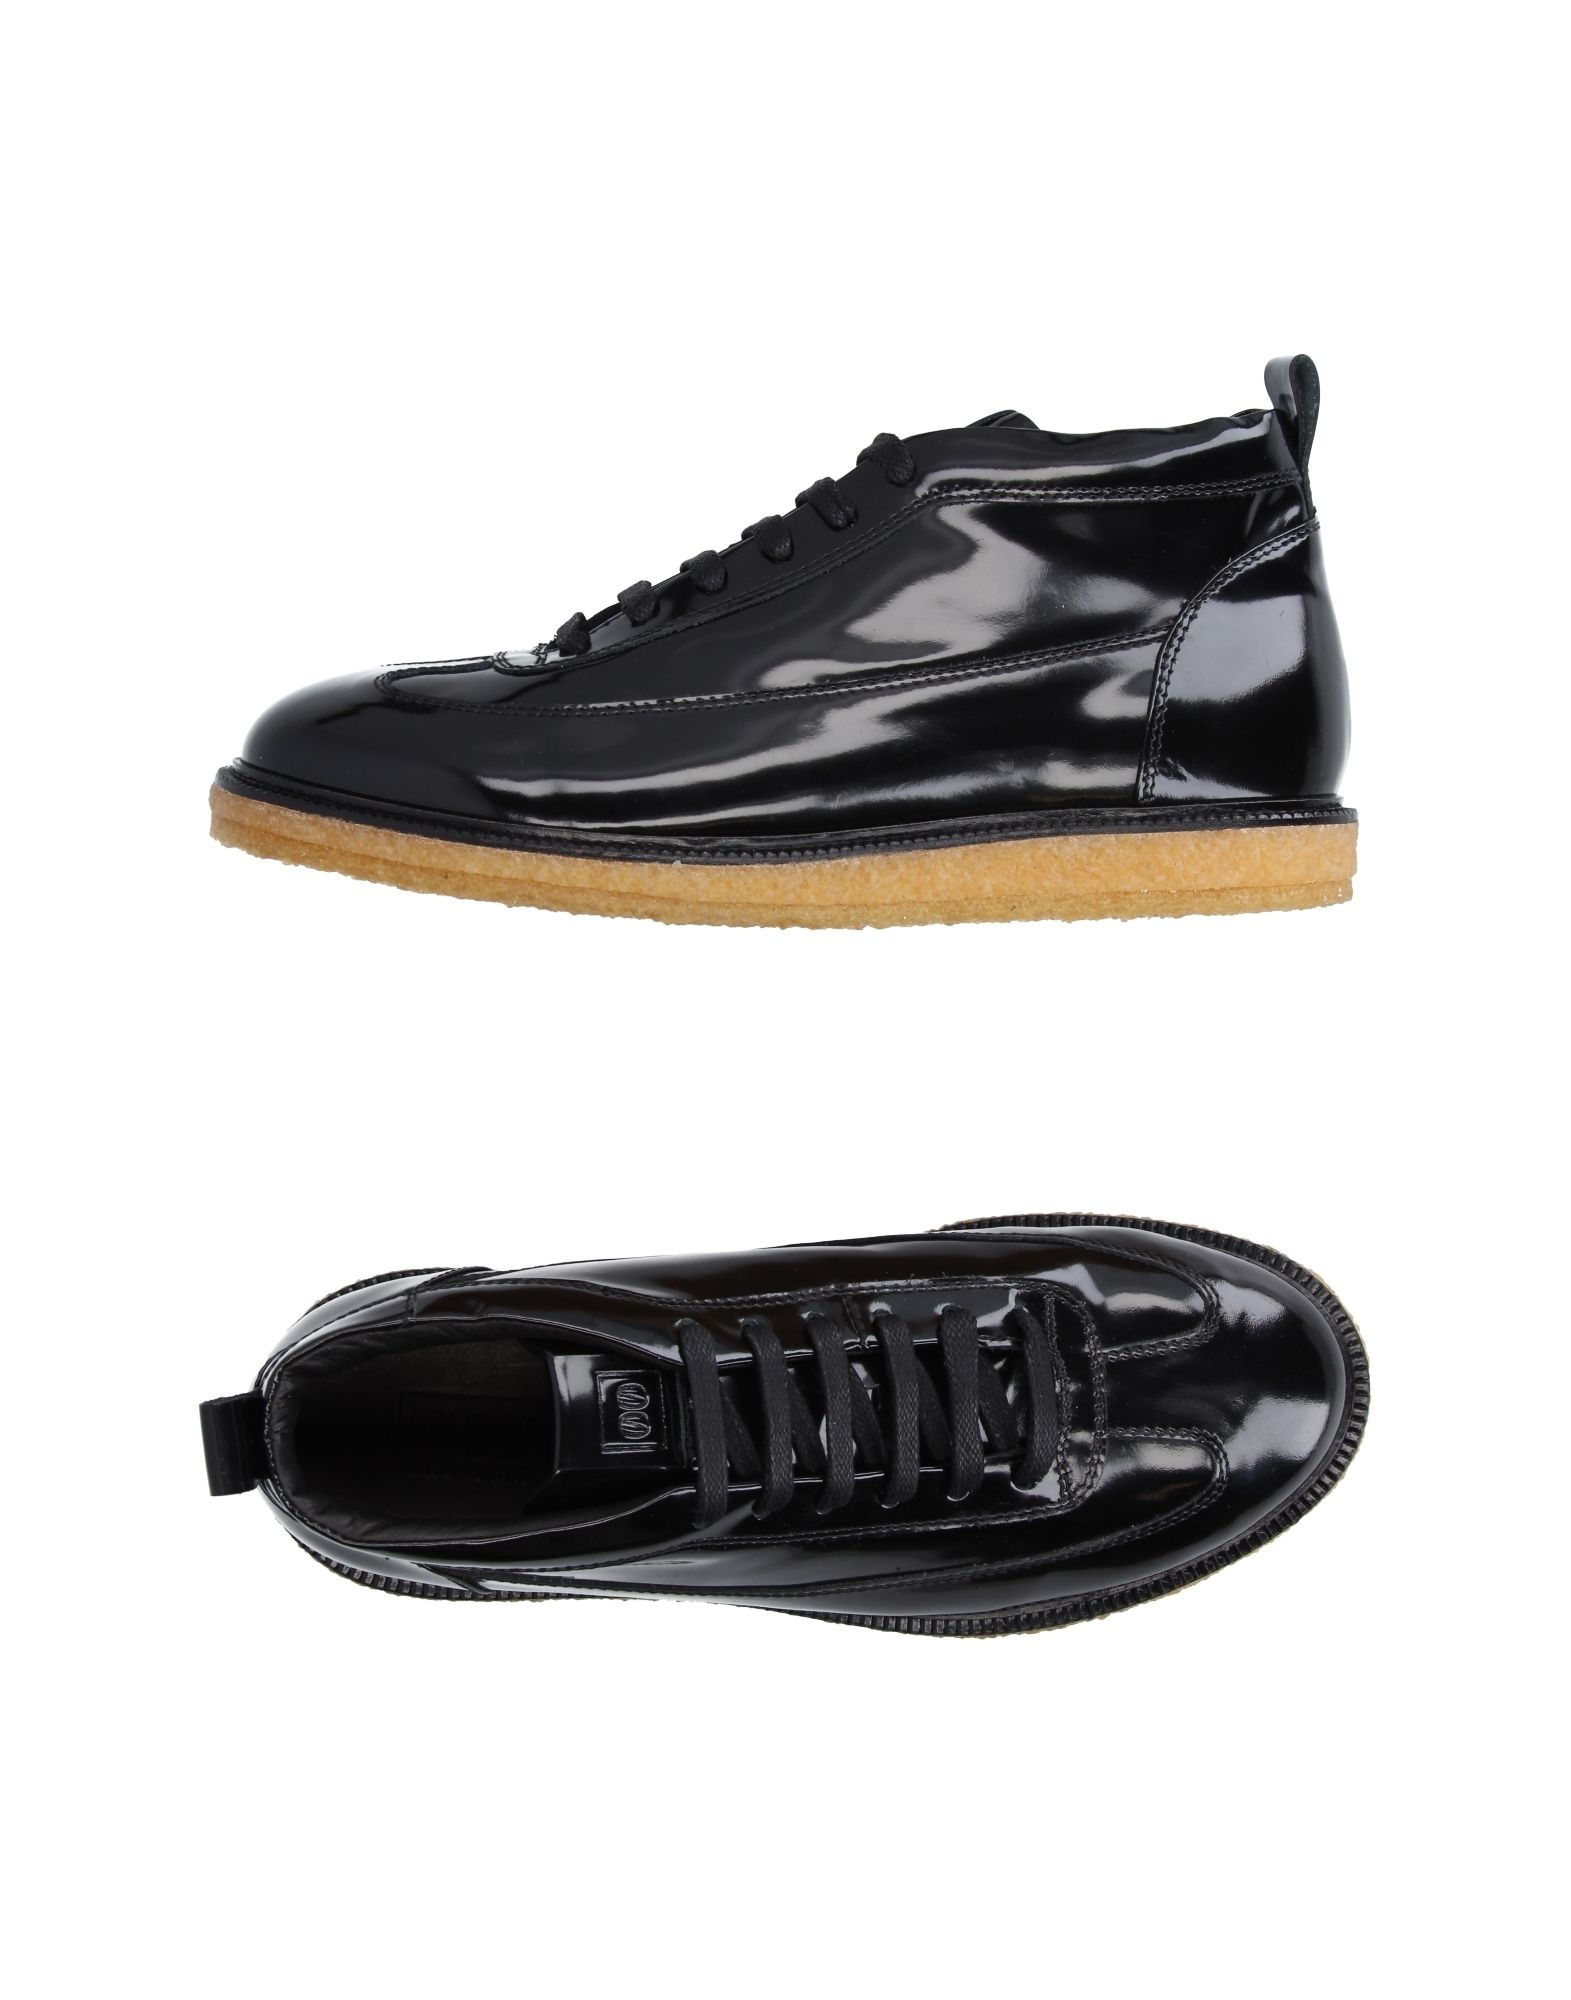 Moda Sneakers Utc00 Uomo - 11219740MS 11219740MS - 303217